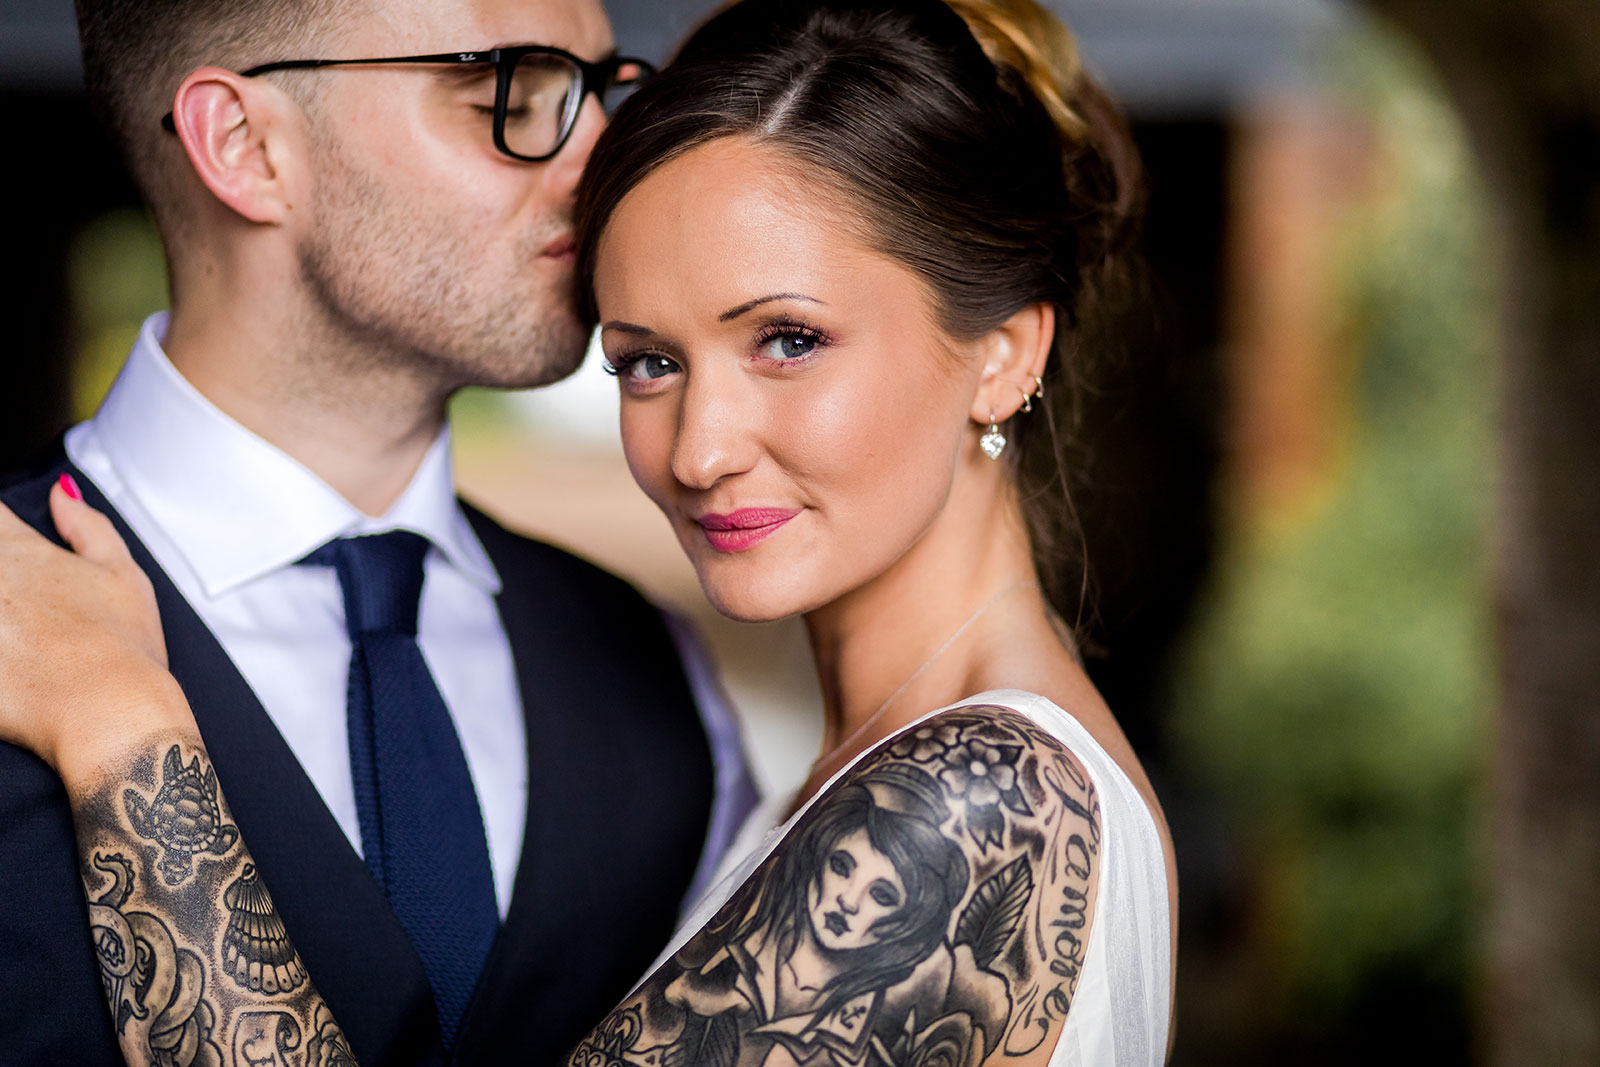 Tattoo Bride Wales - Unique wedding photography Wales